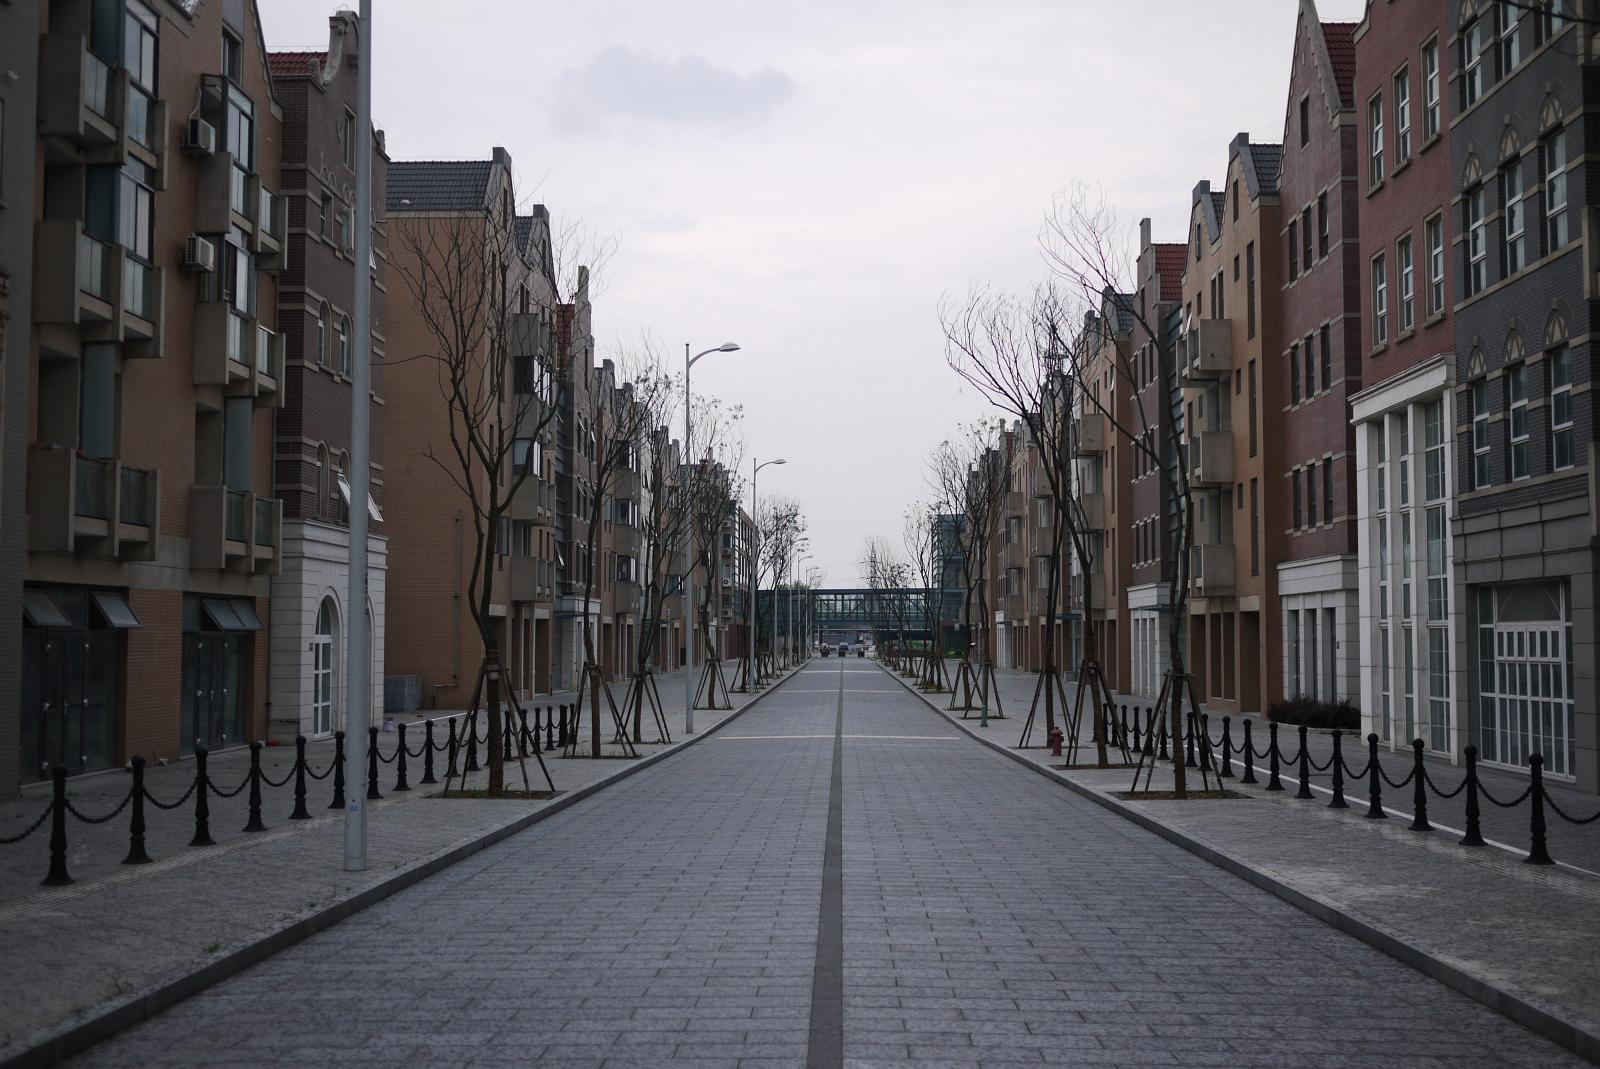 File:Street in Holland Village.jpg - Wikimedia Commons